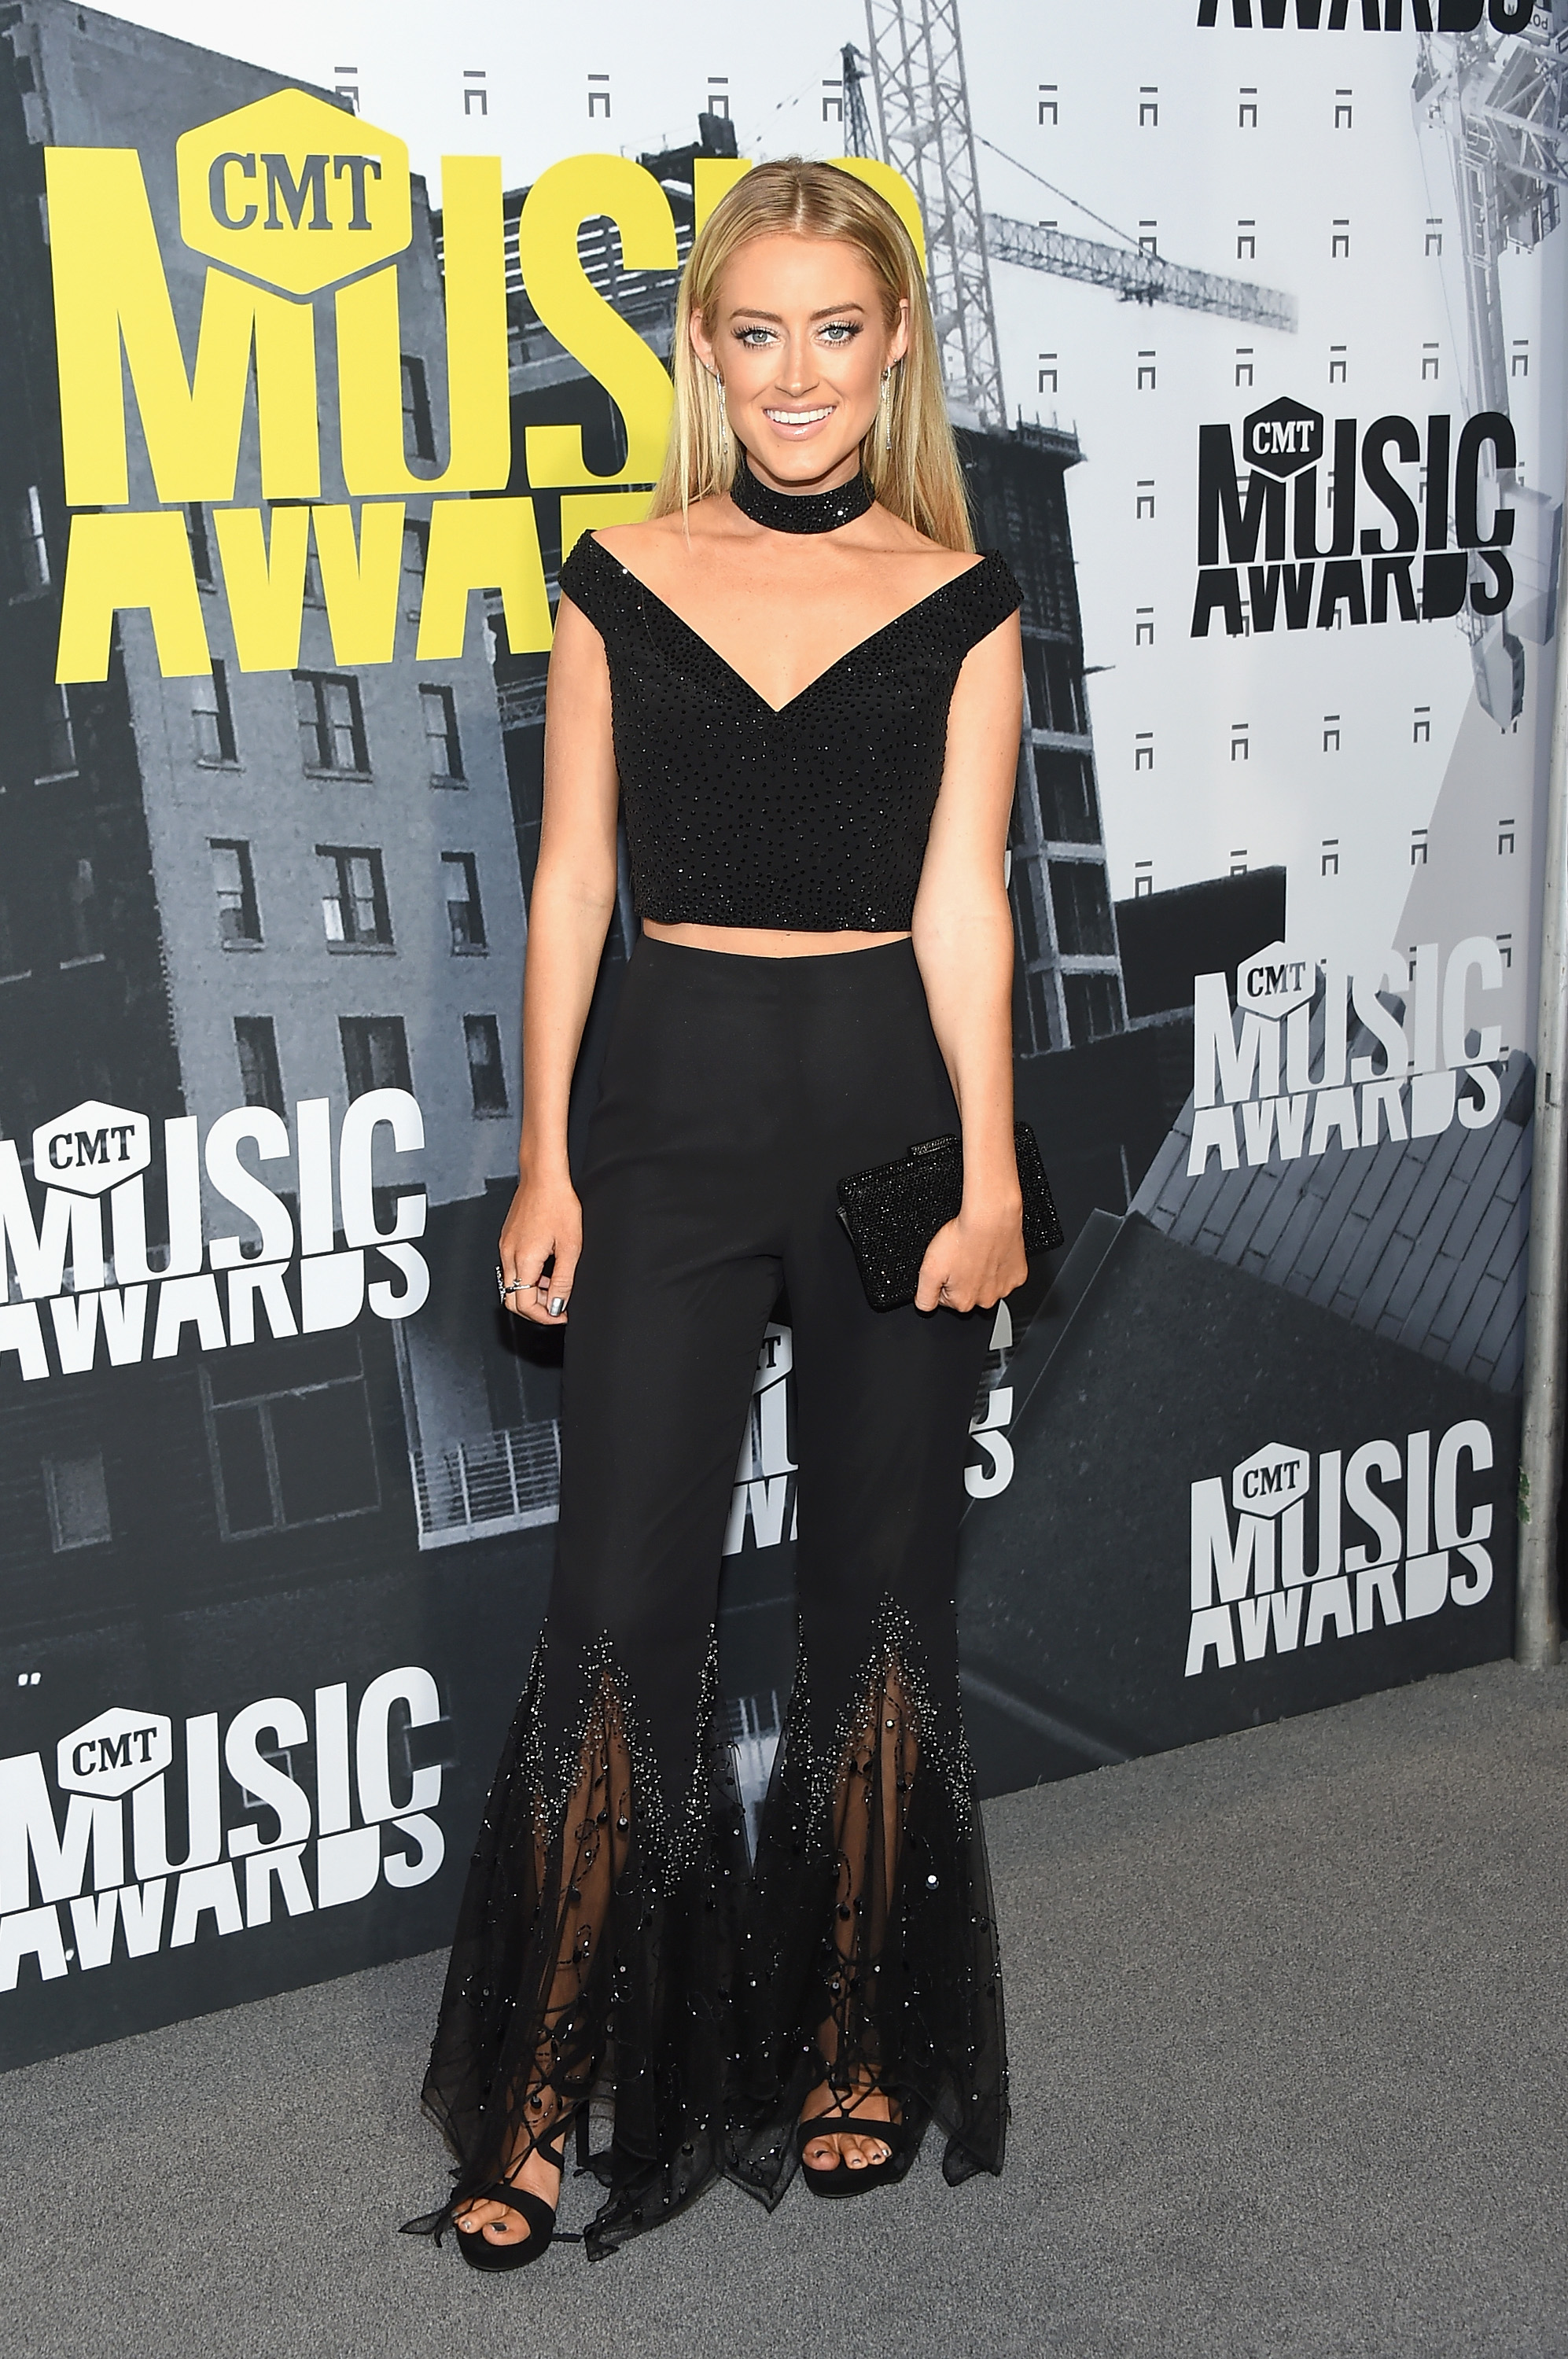 NASHVILLE, TN - JUNE 07: Singer Brooke Eden attends the 2017 CMT Music Awards at the Music City Center on June 7, 2017 in Nashville, Tennessee. (Photo by Michael Loccisano/Getty Images For CMT)